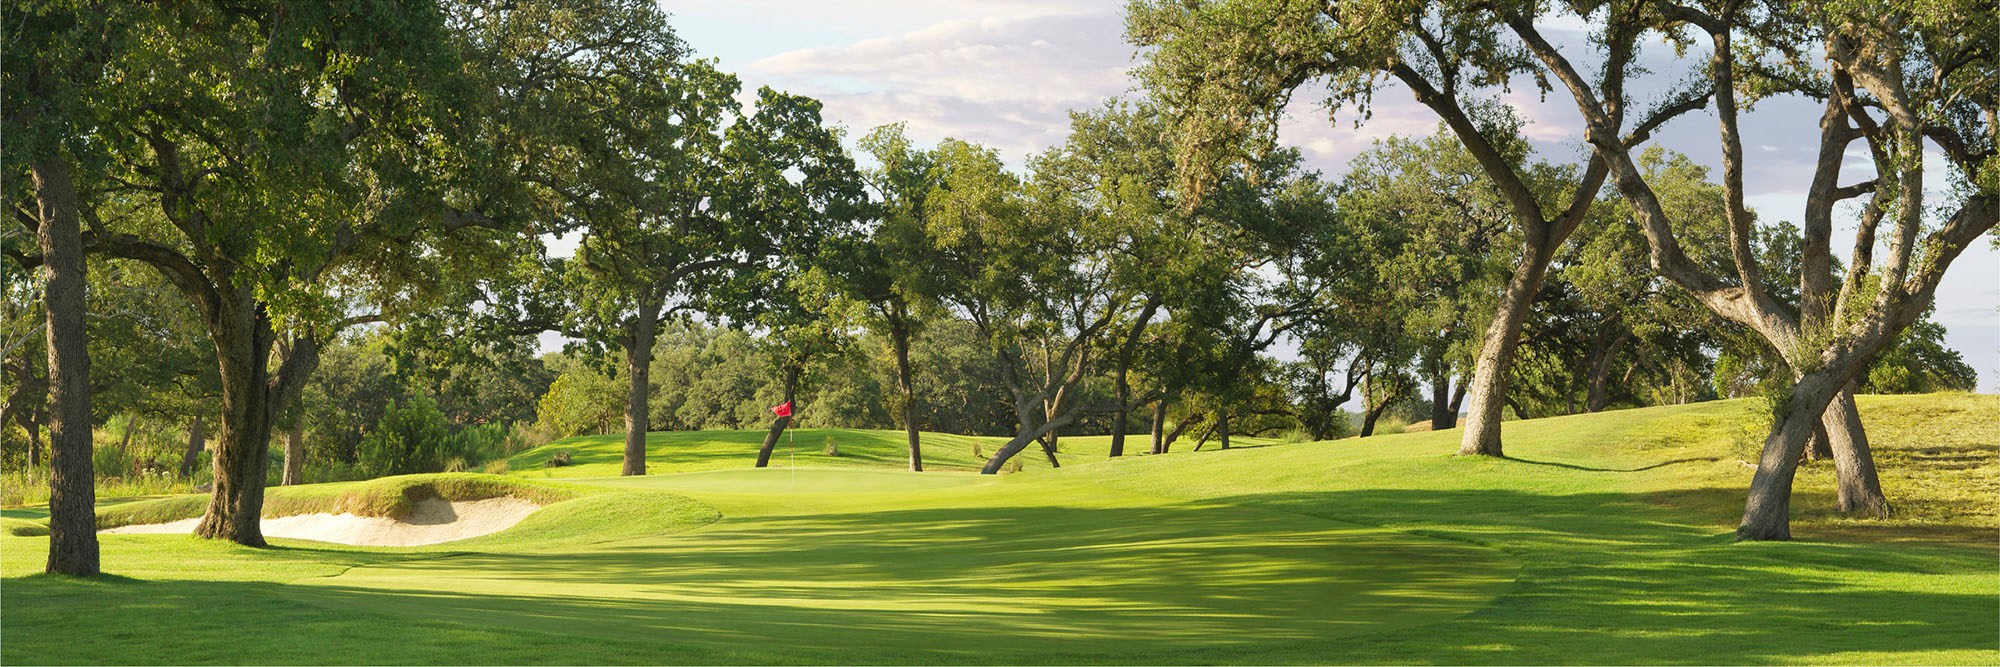 Golf Course Image - Escondido No. 10